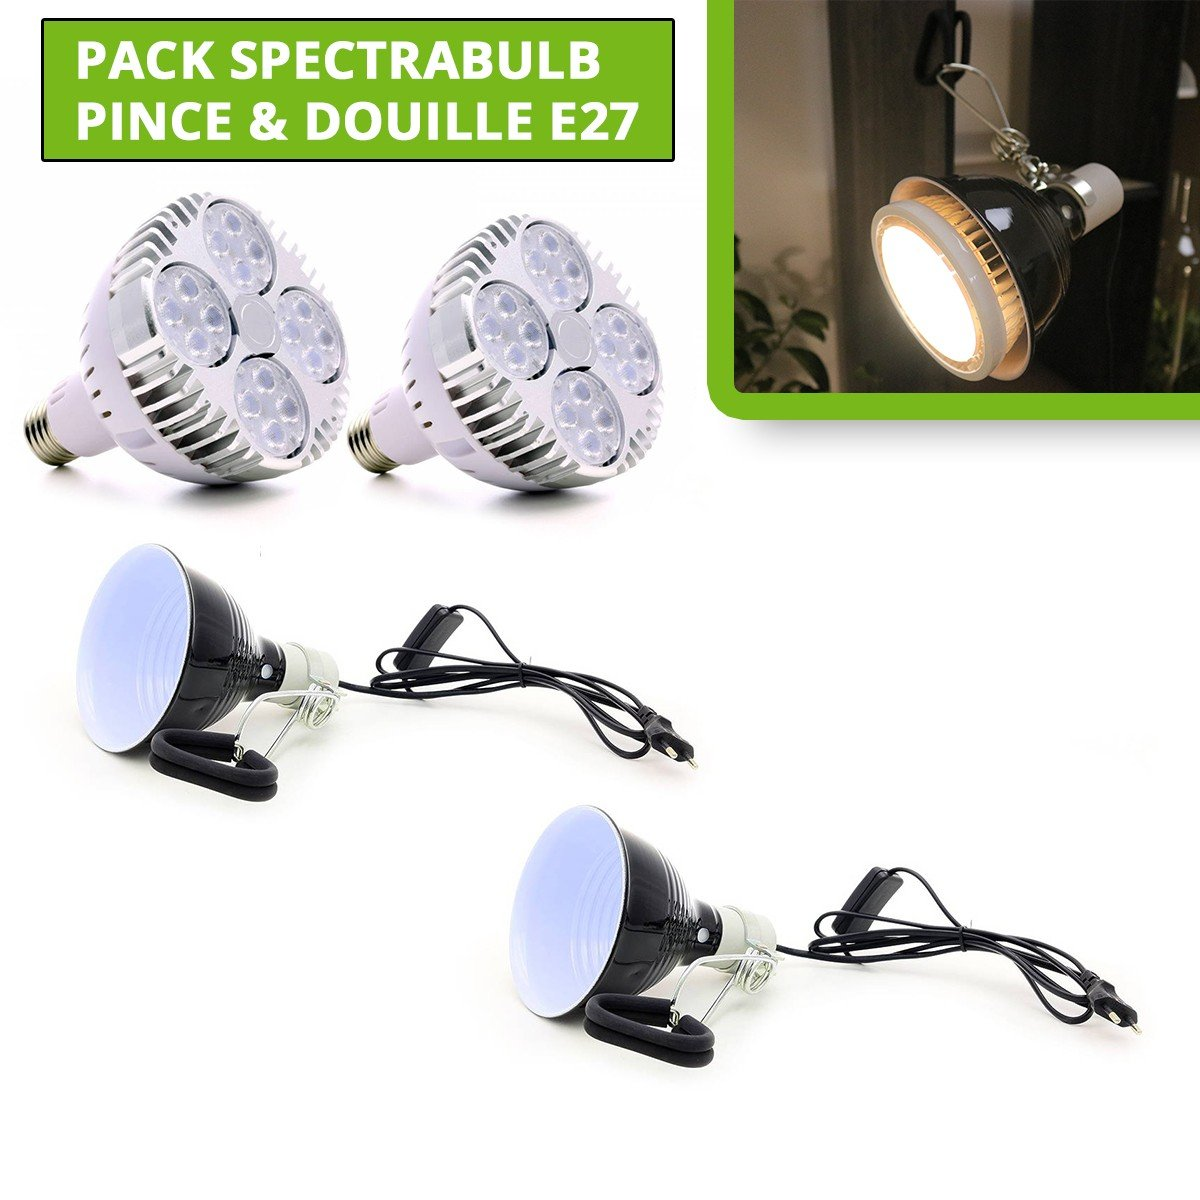 Kit complet pour bouturage - Serre + 24 cubes + gel de bouturage + scalpel - rootit